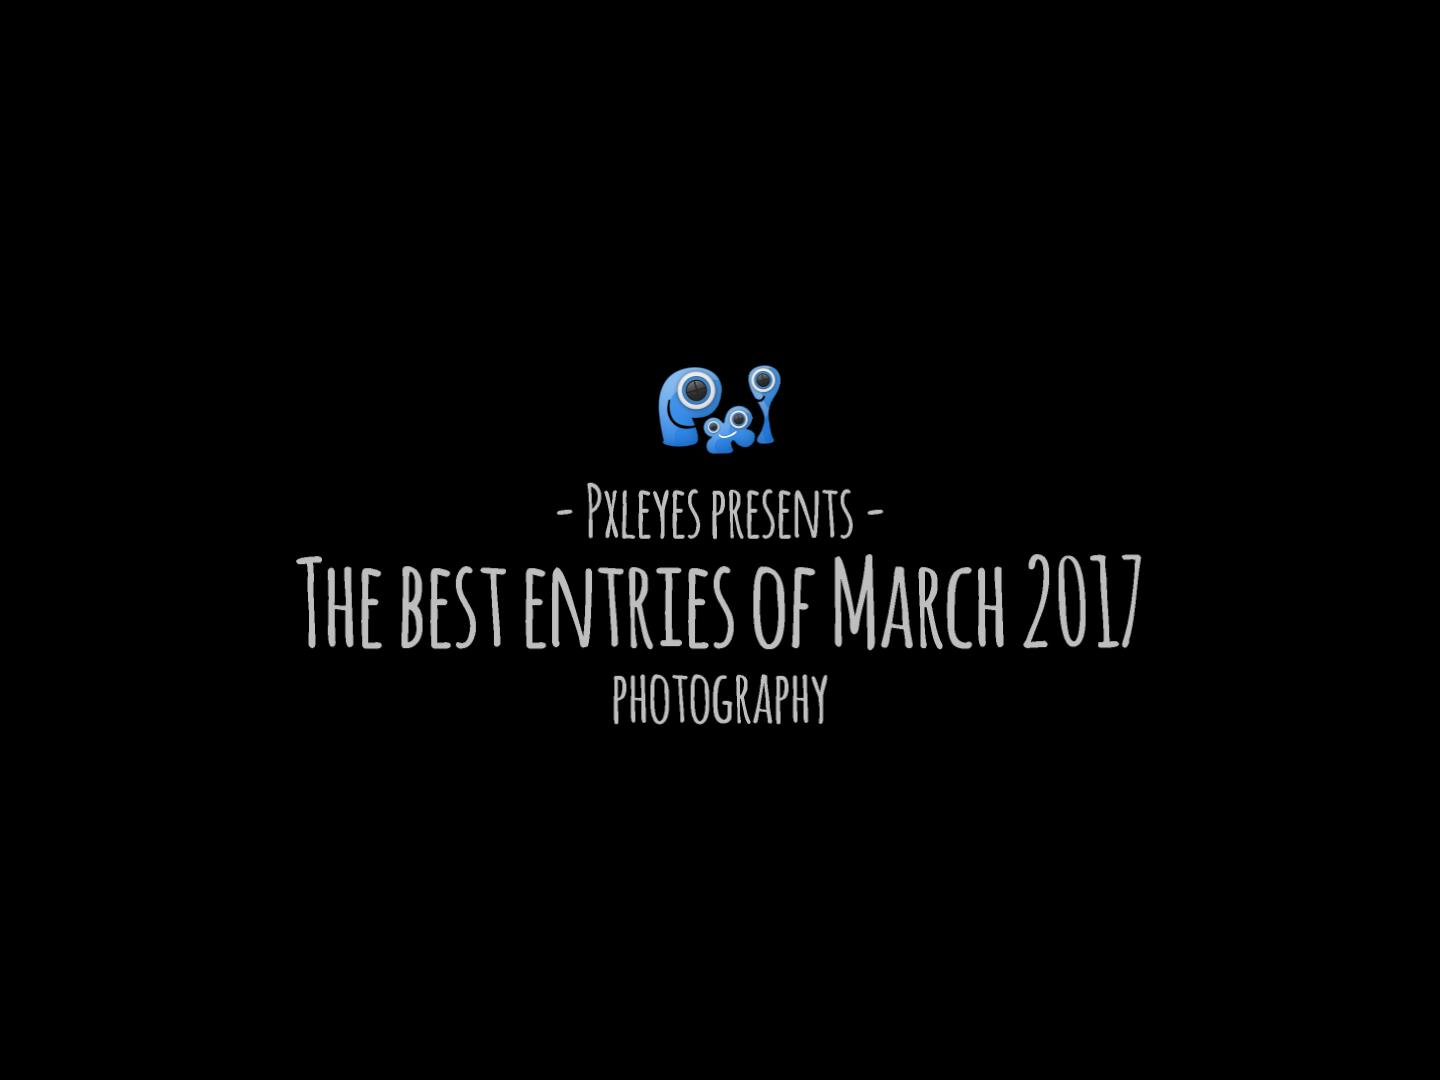 The best entries of March 2017 Photography